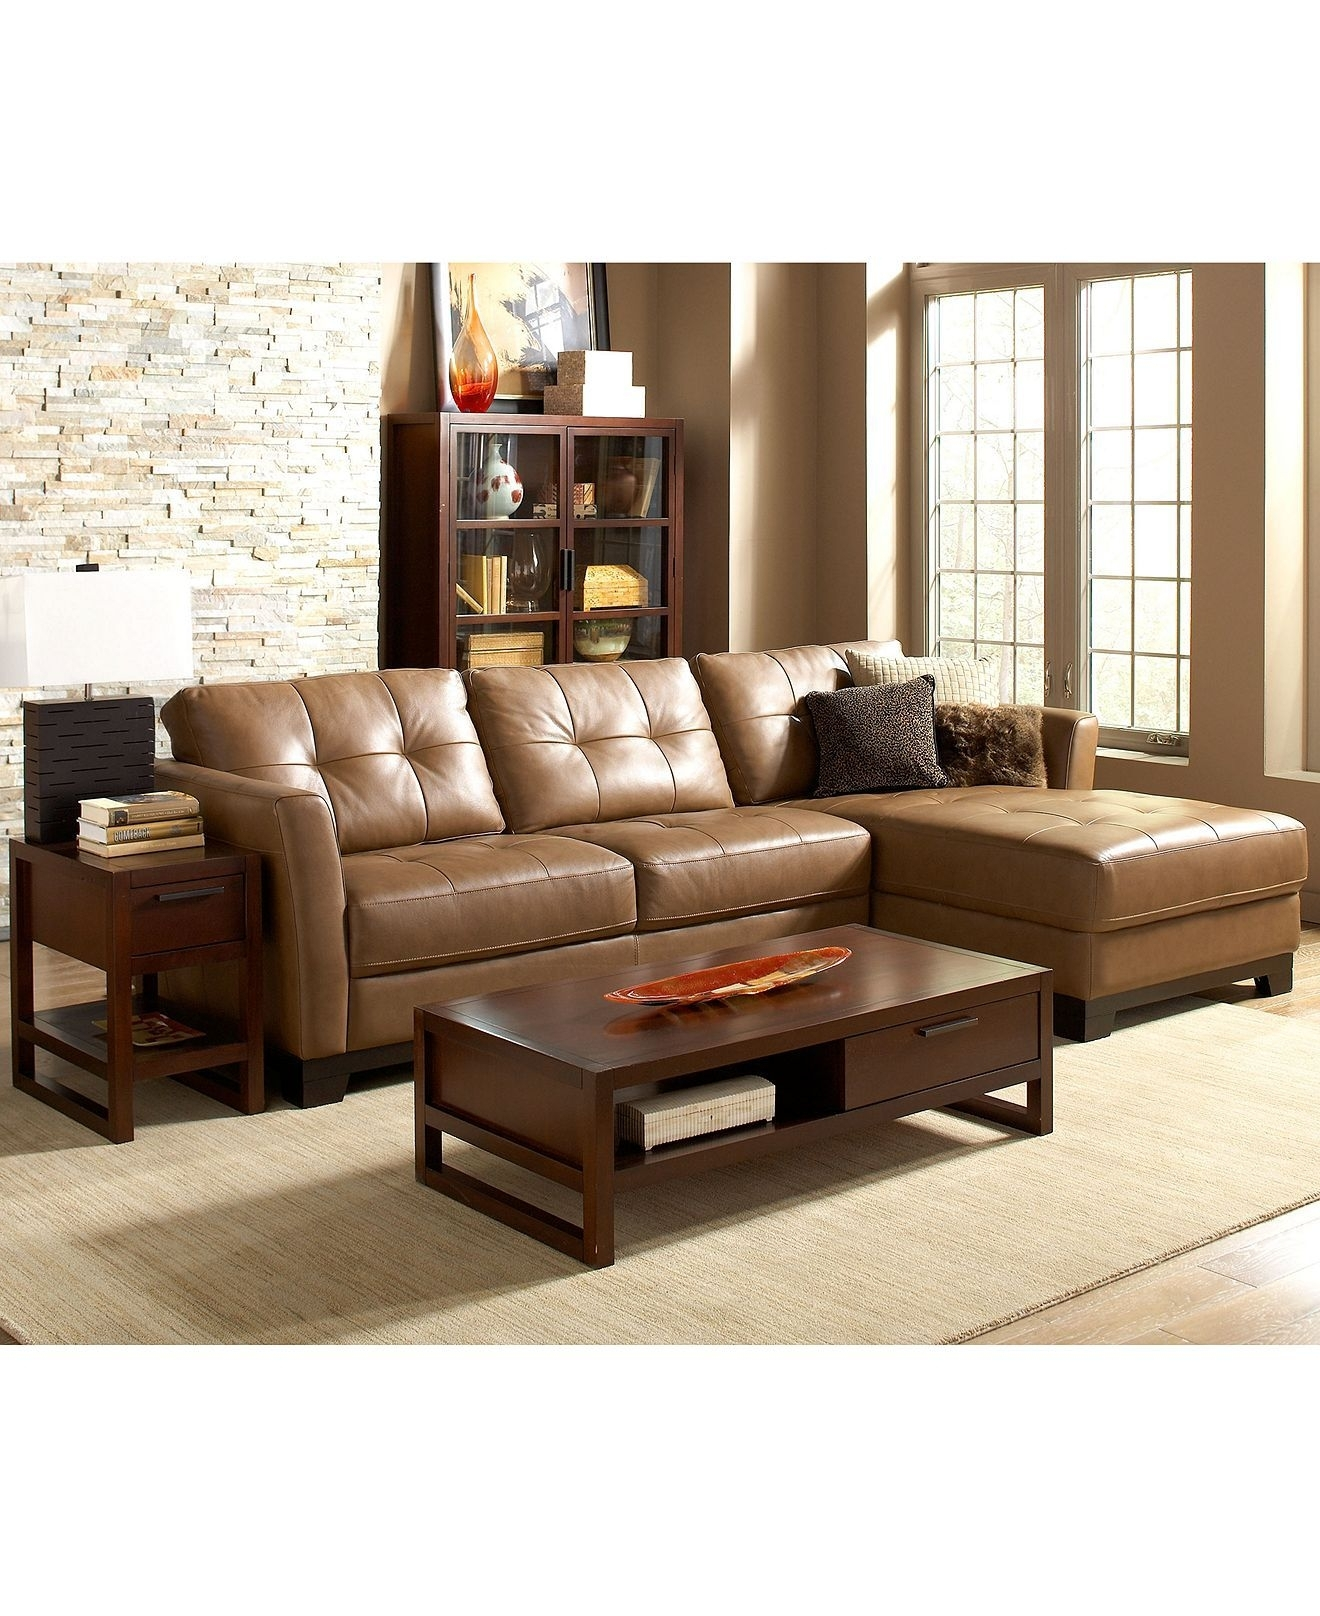 Martino Leather Sectional Living Room Furniture Sets & Pieces throughout Macys Leather Sectional Sofas (Image 8 of 10)